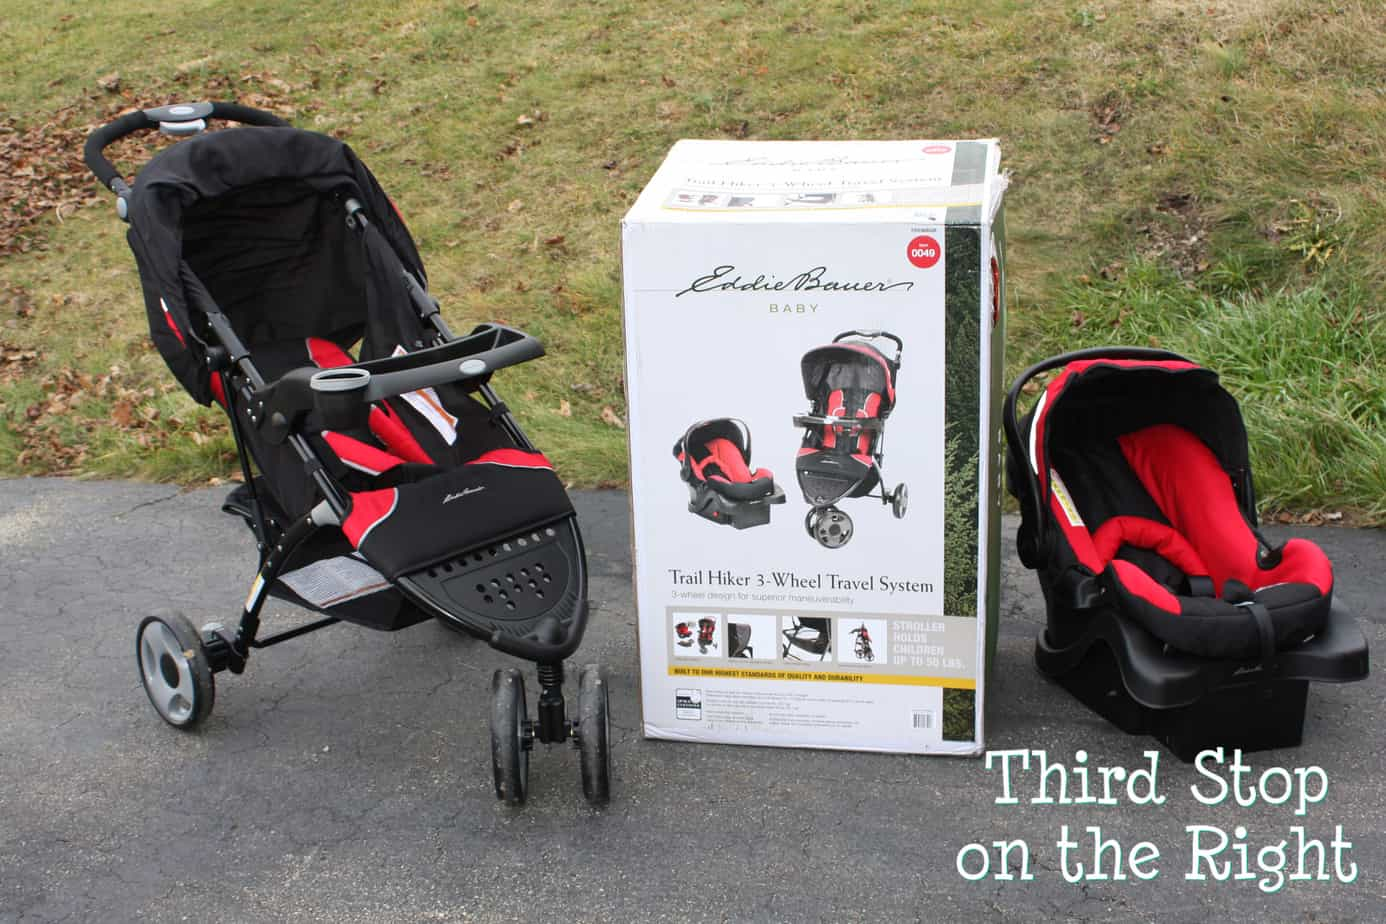 Car Seat Stroller Travel System Reviews Eddie Bauer Trail Hiker 3 Wheel Travel System Review Third